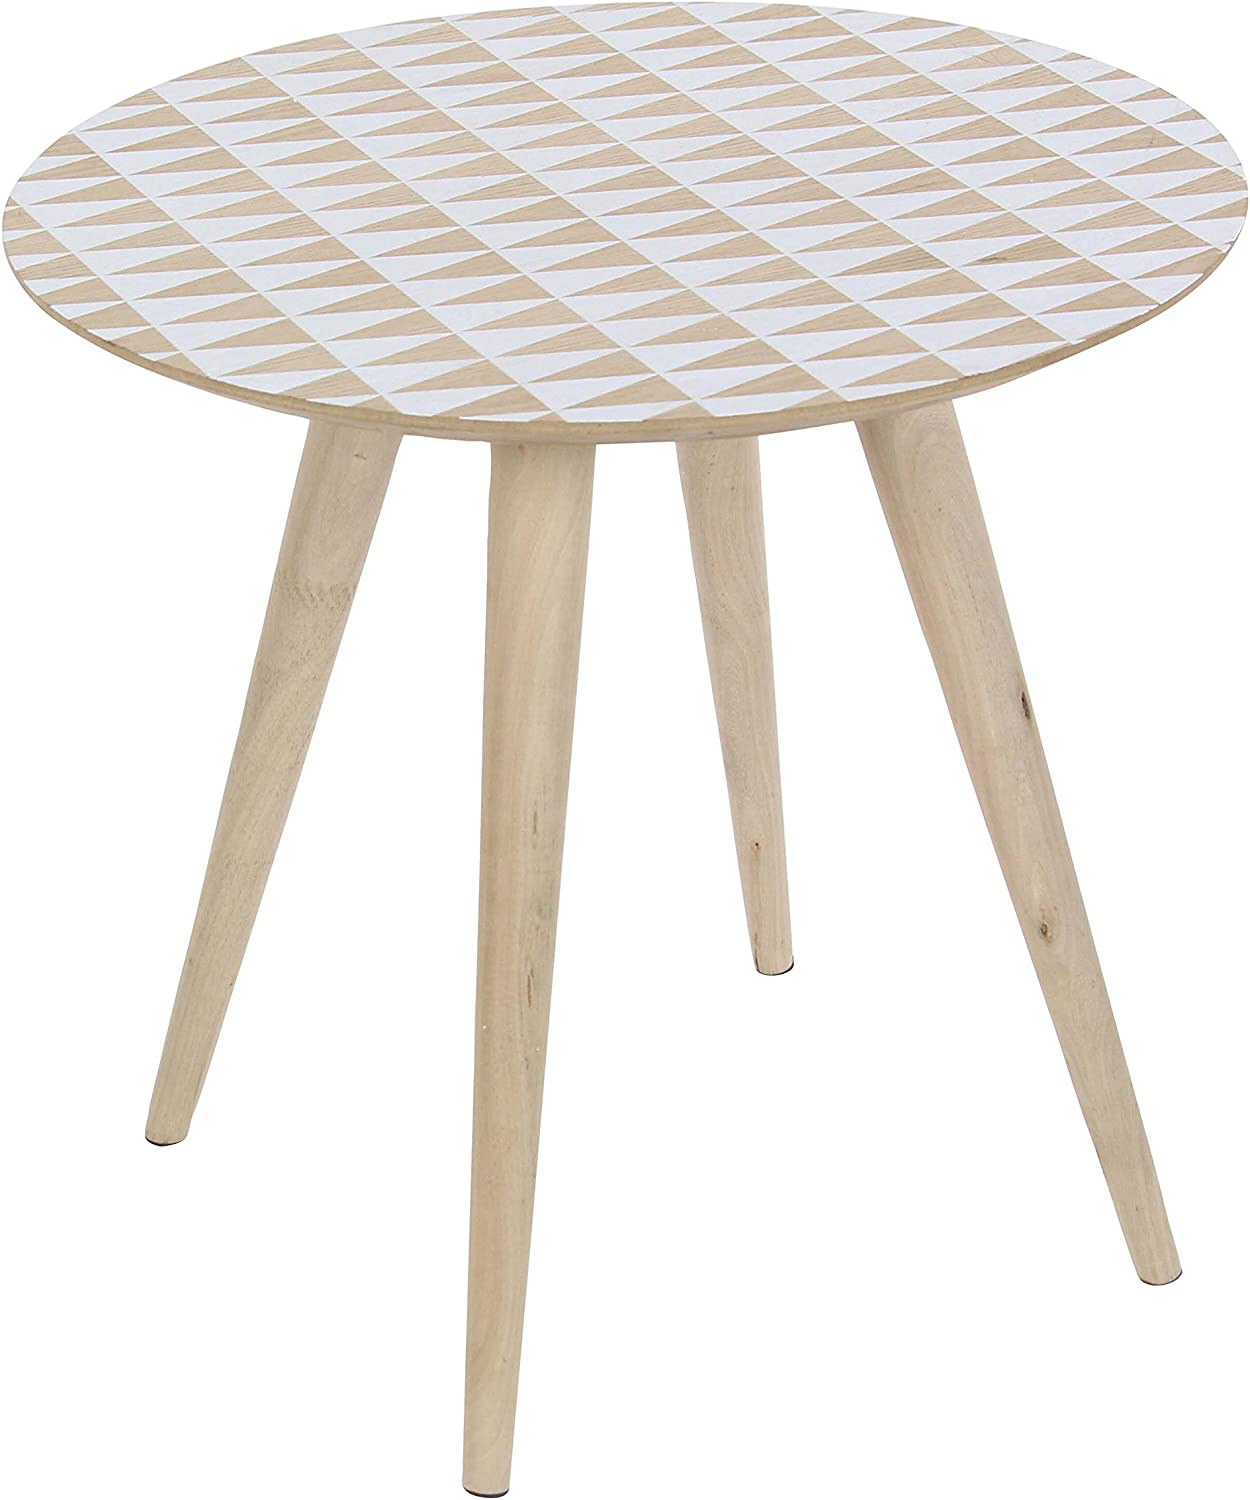 Deco 79 14869 Wooden Accent Table, Brown White